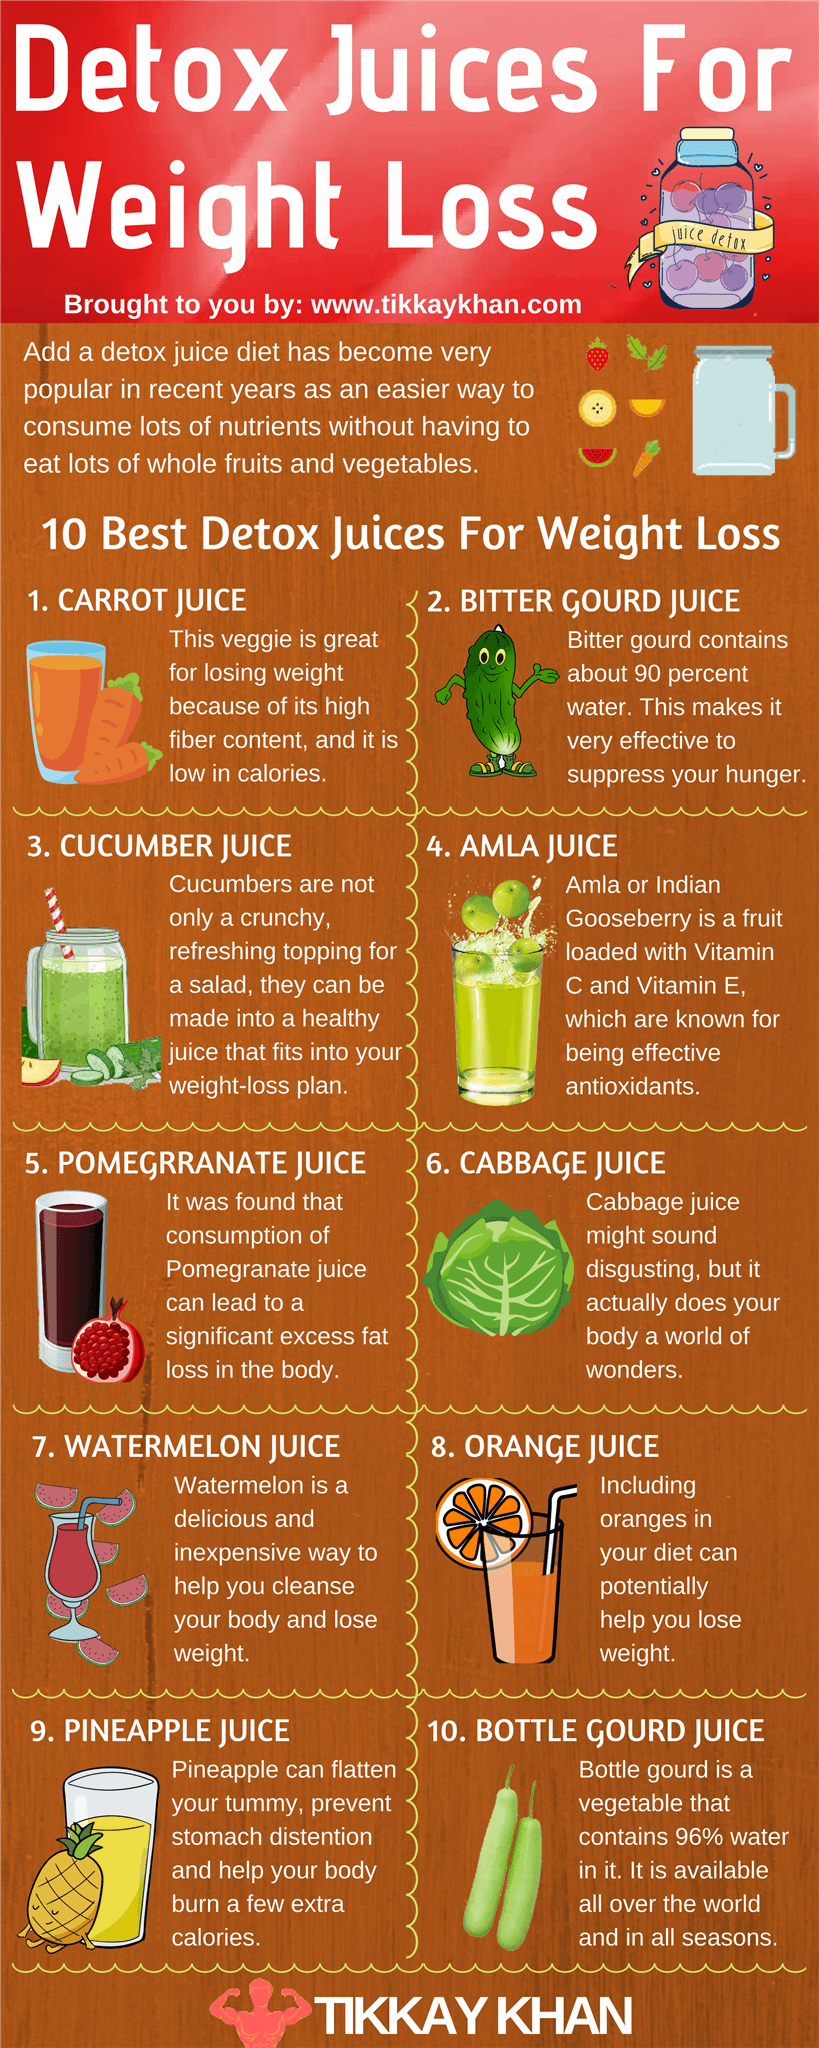 Detox Juices for weight loss